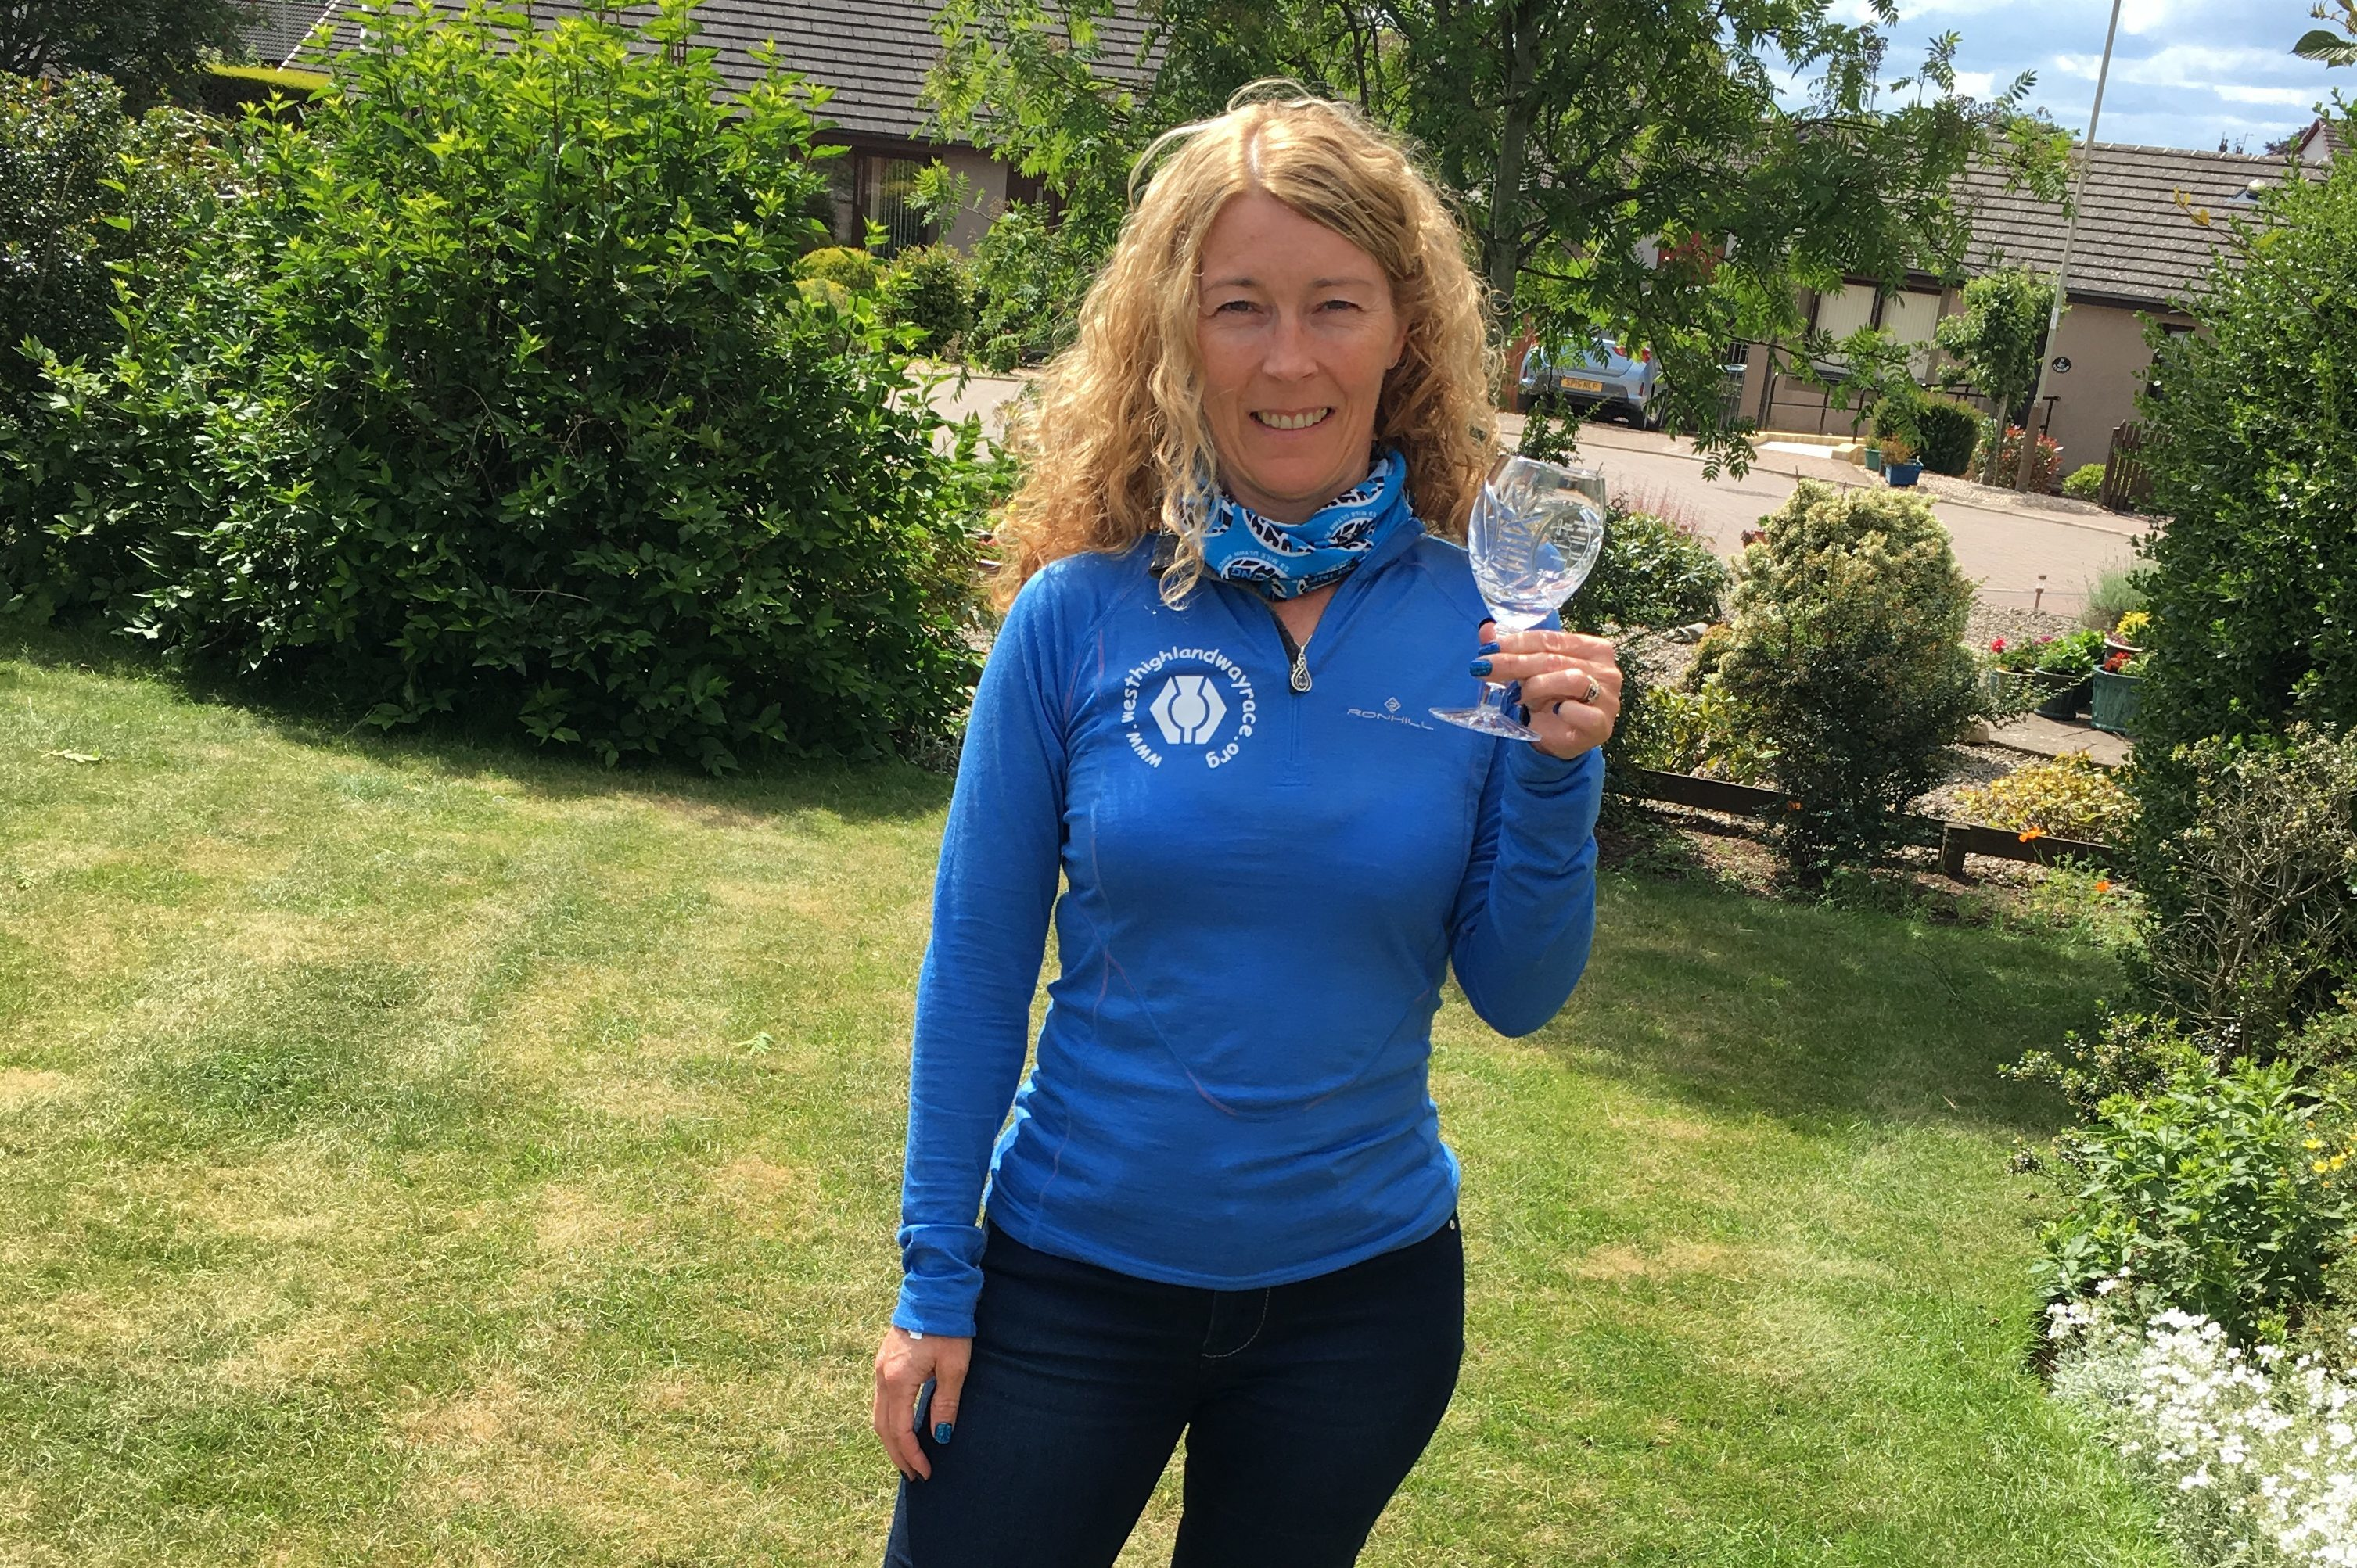 Angie was one of the 200 who ran from Milngavie to Fort William.